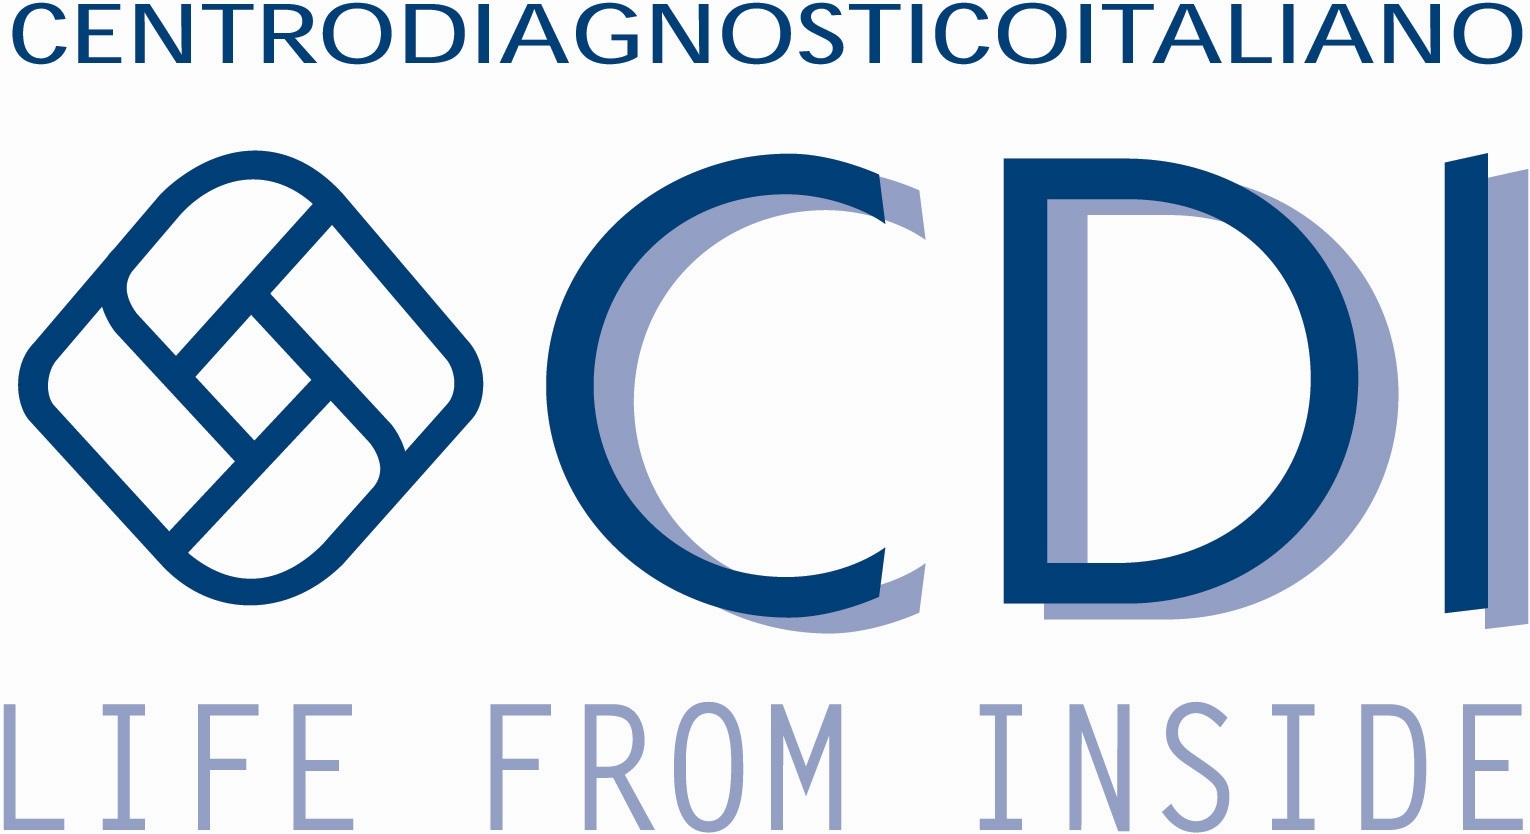 CDI Centro Diagnostico Italiano S.p.a.